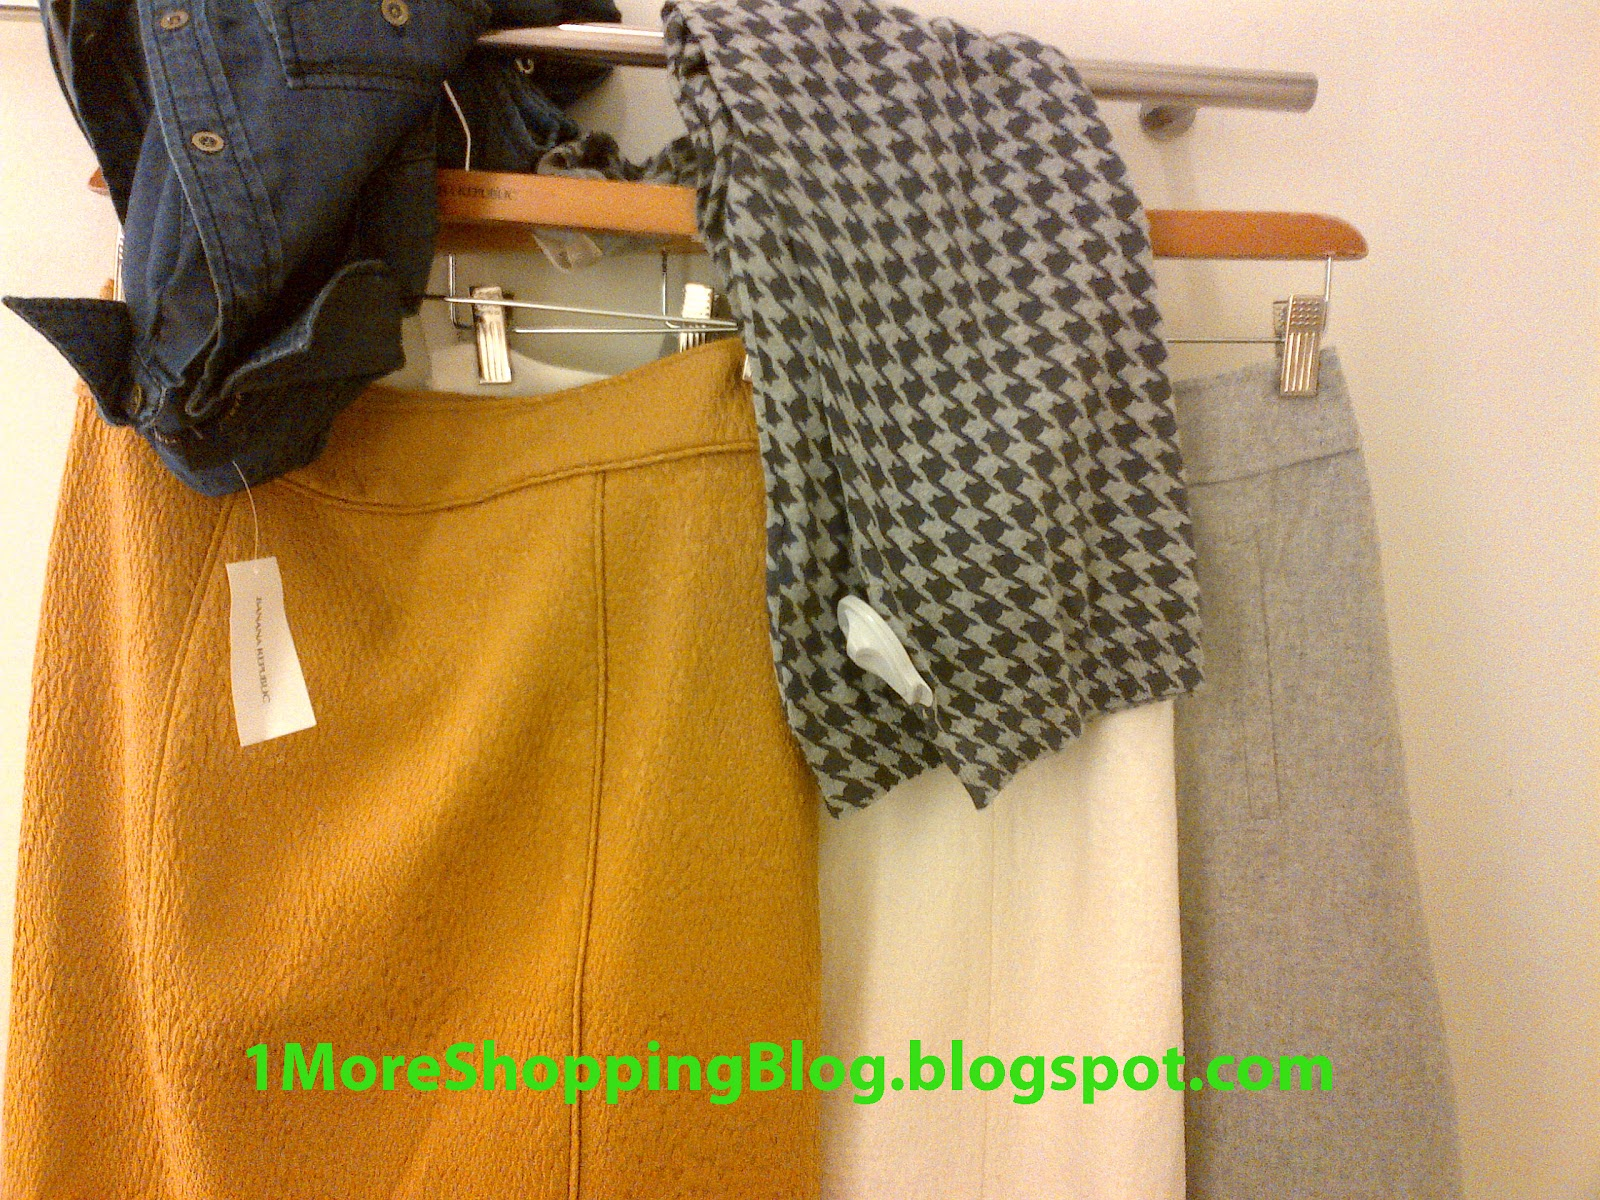 1c6fcad9a1 A handful of items caught my attention, among them this Solid Textured  Pencil Skirt (size 2) styled with the Soft-Wash Denim Shirt size S. I tried  this ...